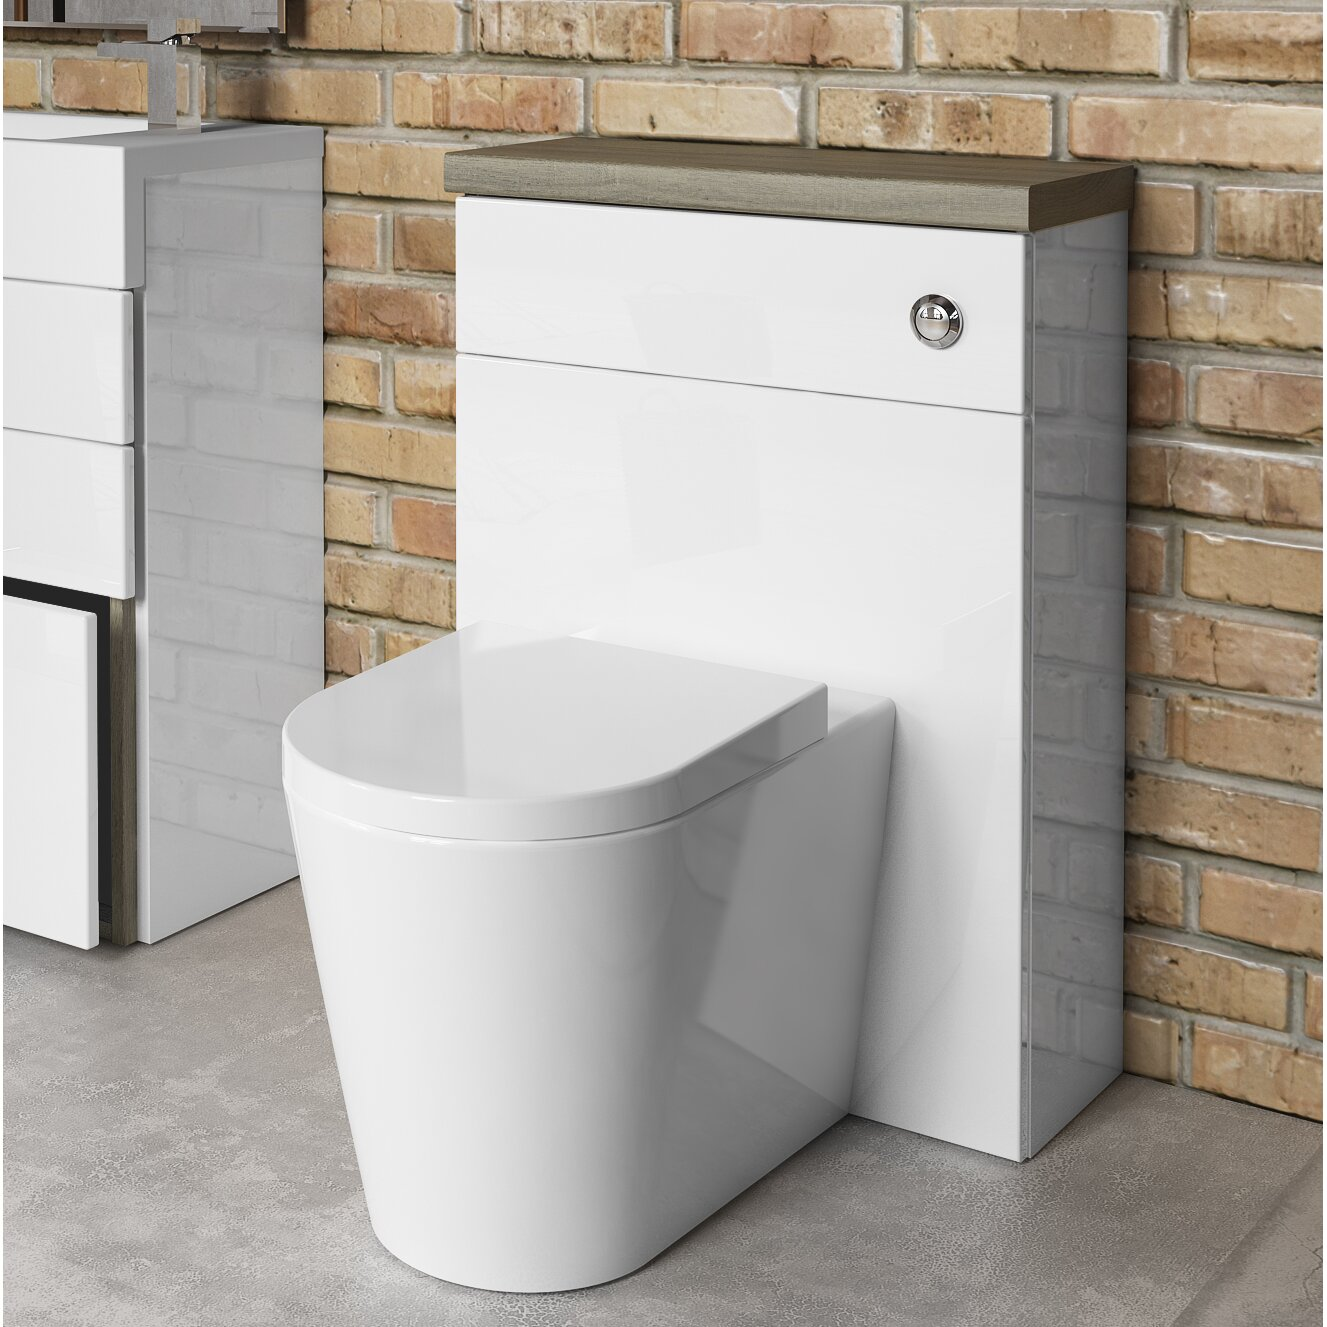 Bemodern bathrooms calgary bathroom furniture set wayfair uk - Wayfair furniture bathroom vanities ...